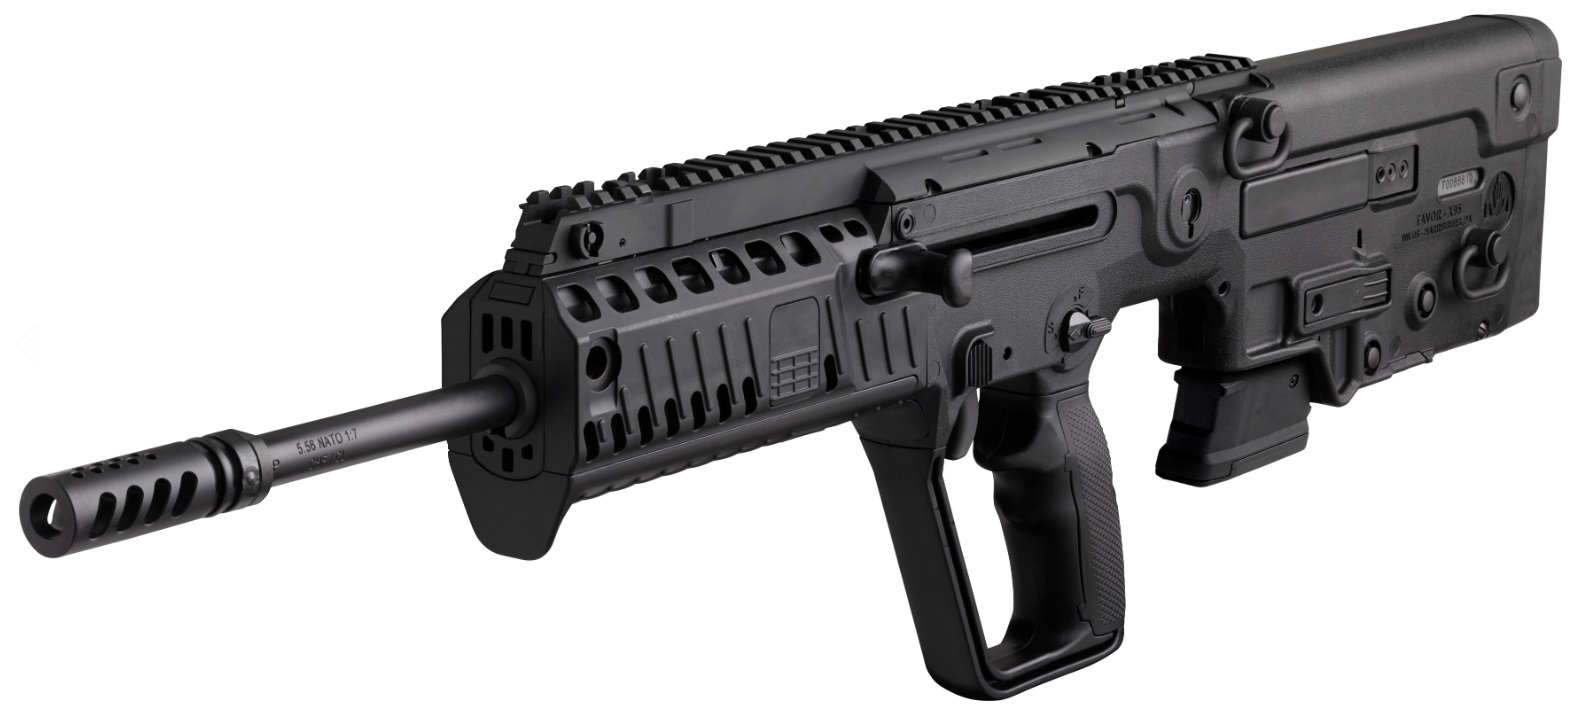 IWI - Israel Weapon Industries TAVOR X95 223 REM | 5.56 NATO